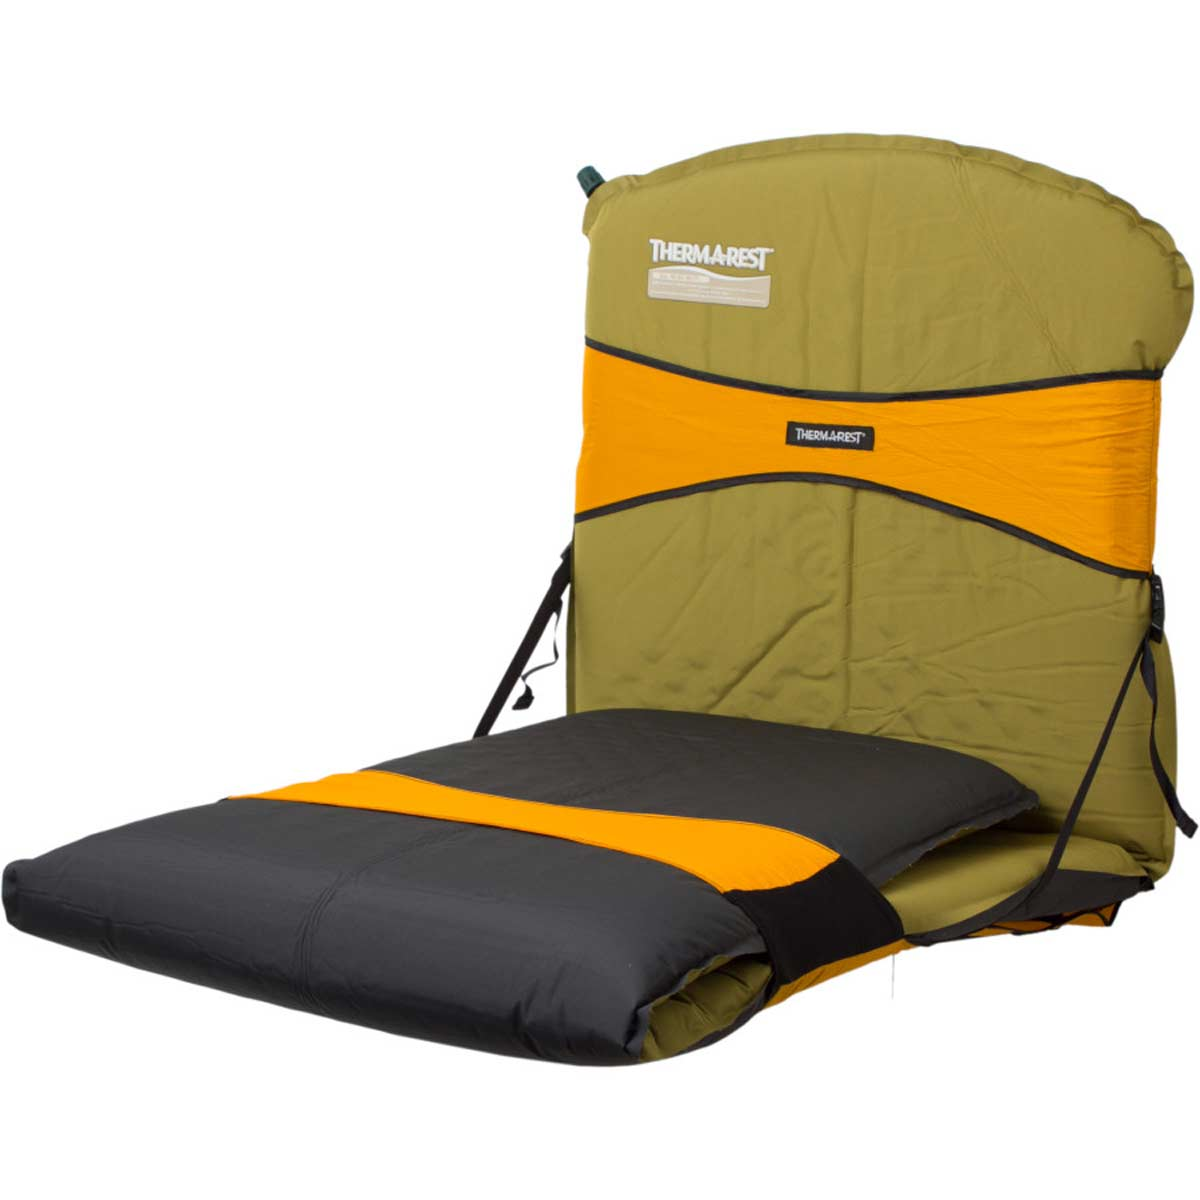 Therm-A-Rest Trekker Chair Kit to use with the sleeping pad